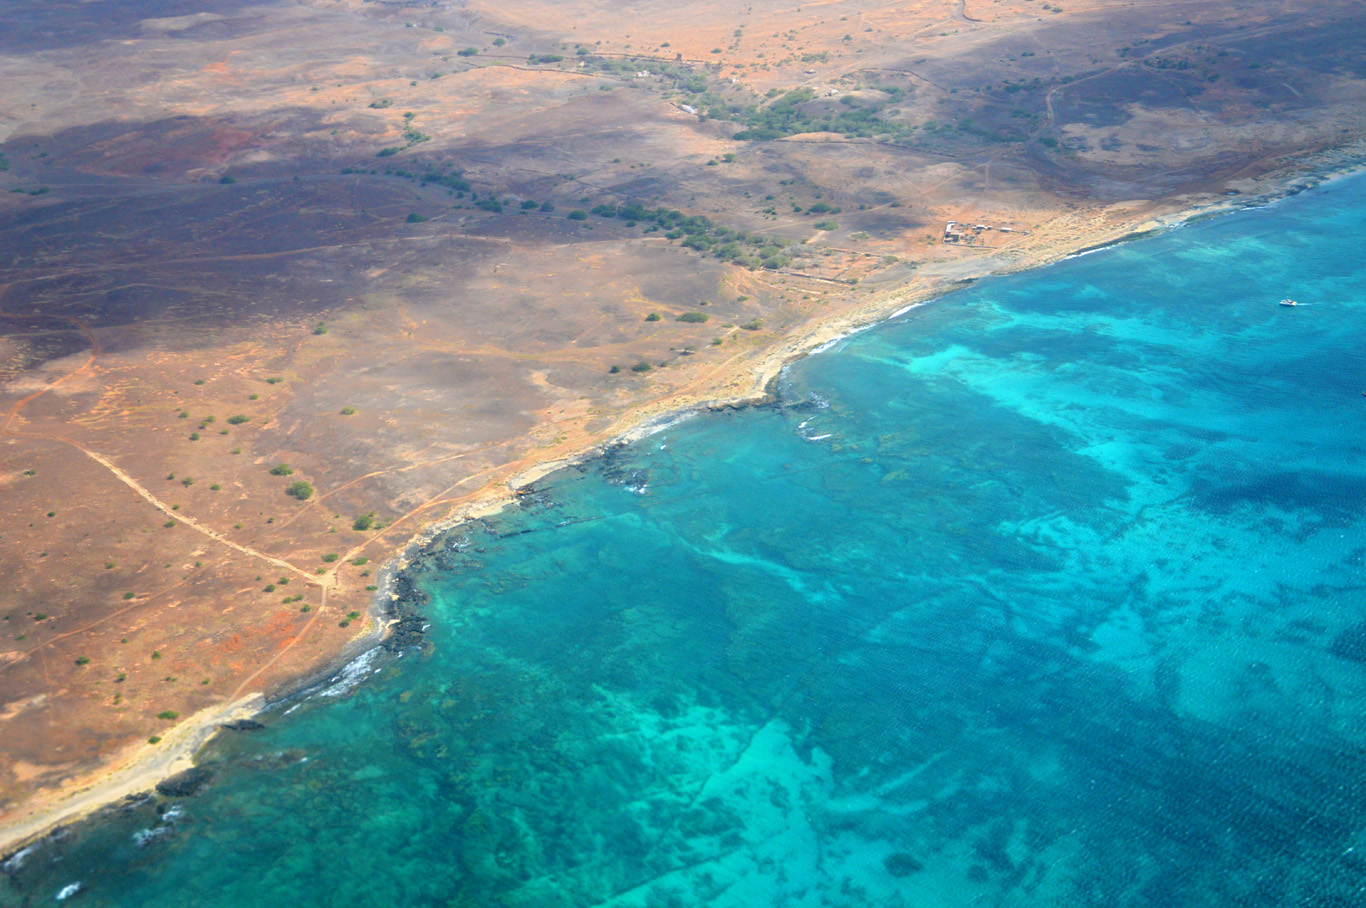 Dry land and turquoise water - view from the plane